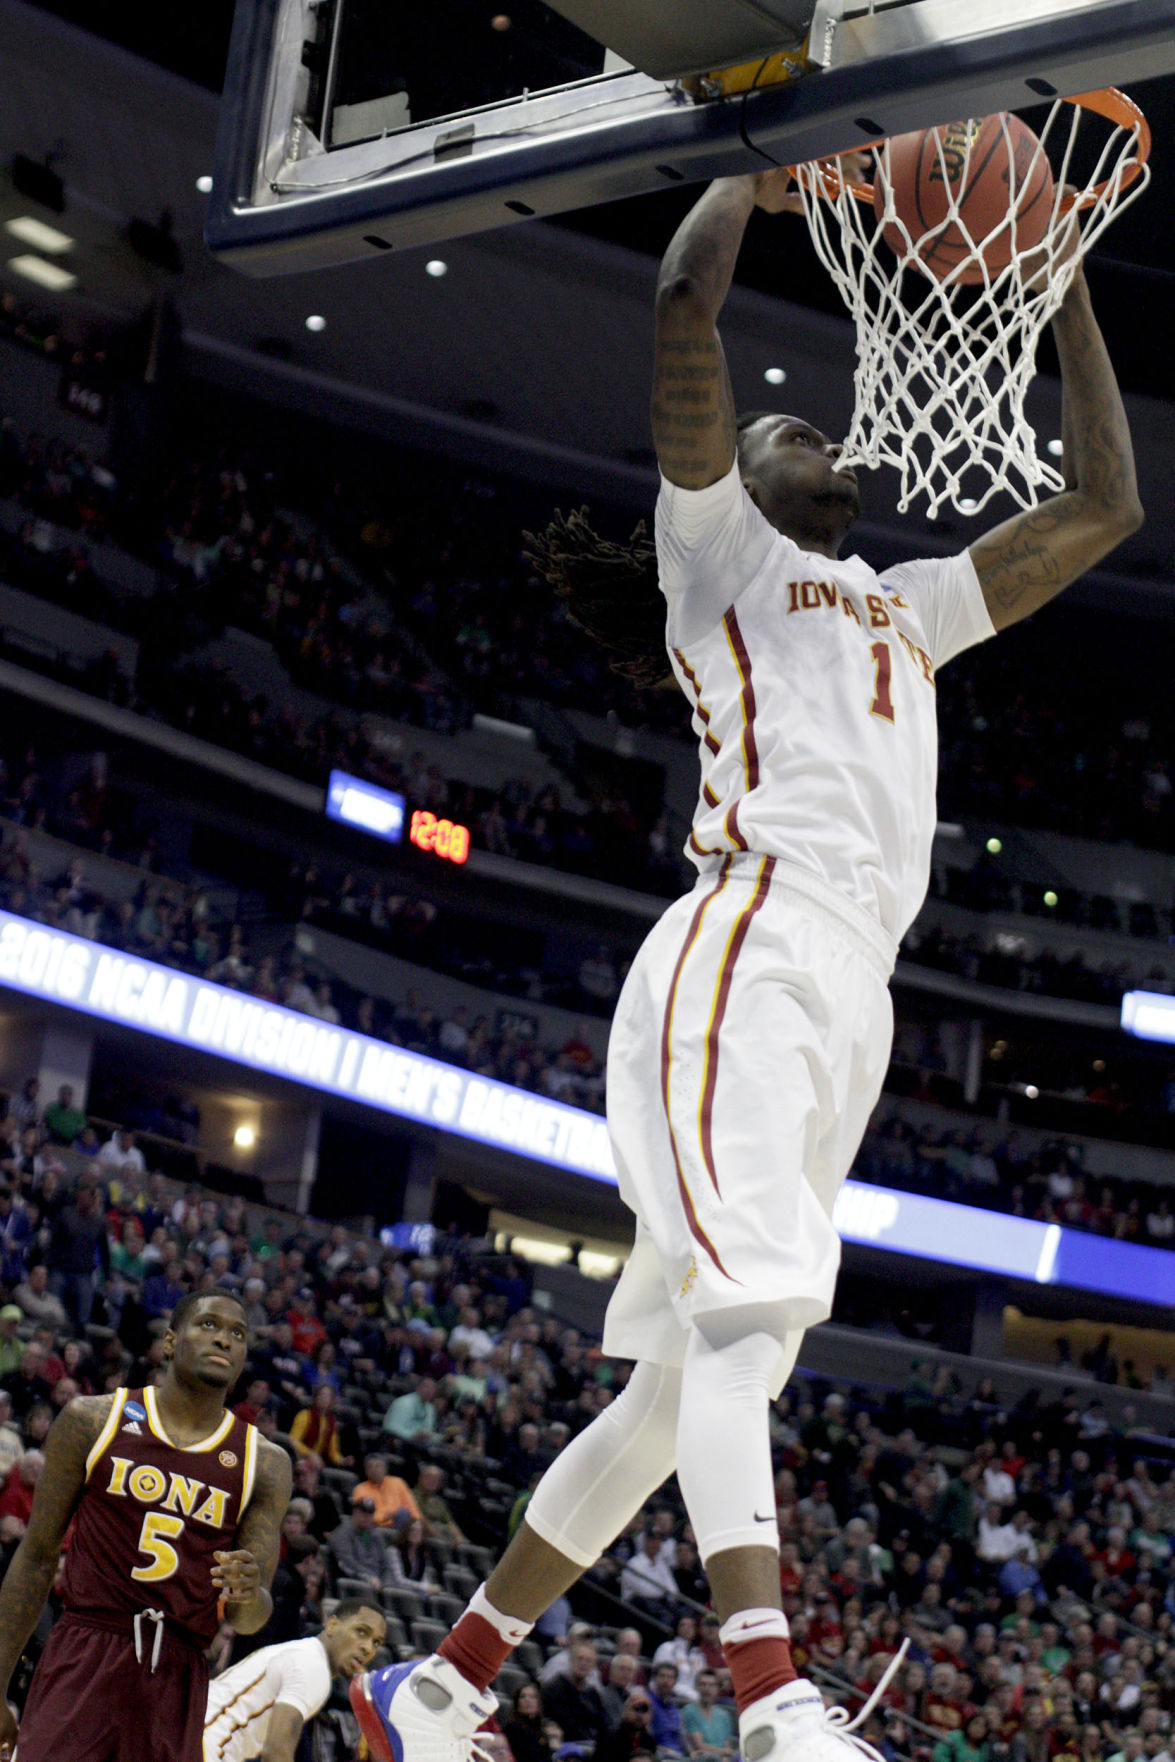 Senior Jameel McKay dunks the ball in the first round of the NCAA Tournament at the Pepsi Center in Denver. Photo by: Lani Tons/Iowa State Daily.